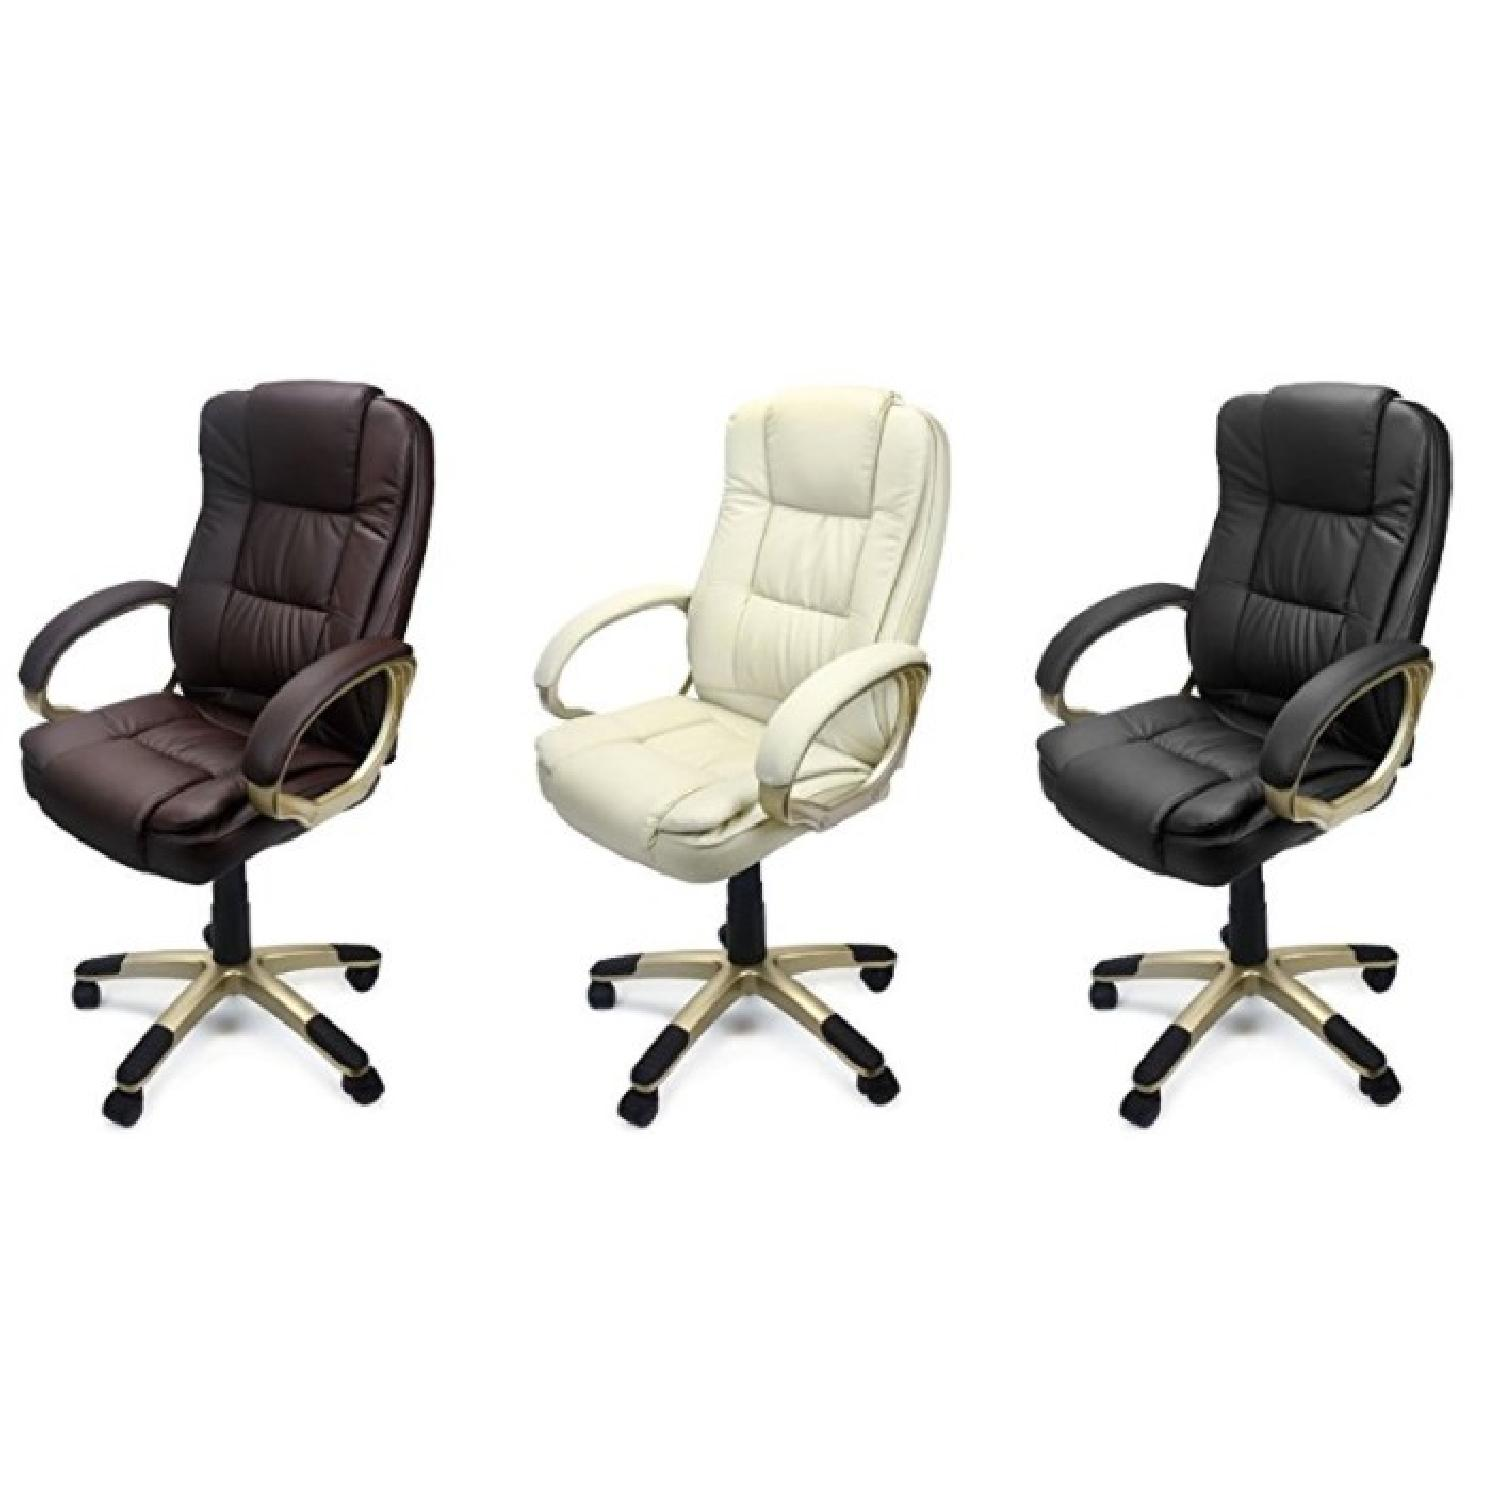 Leather Executive Office Desk Chair in Beige/Gold-0